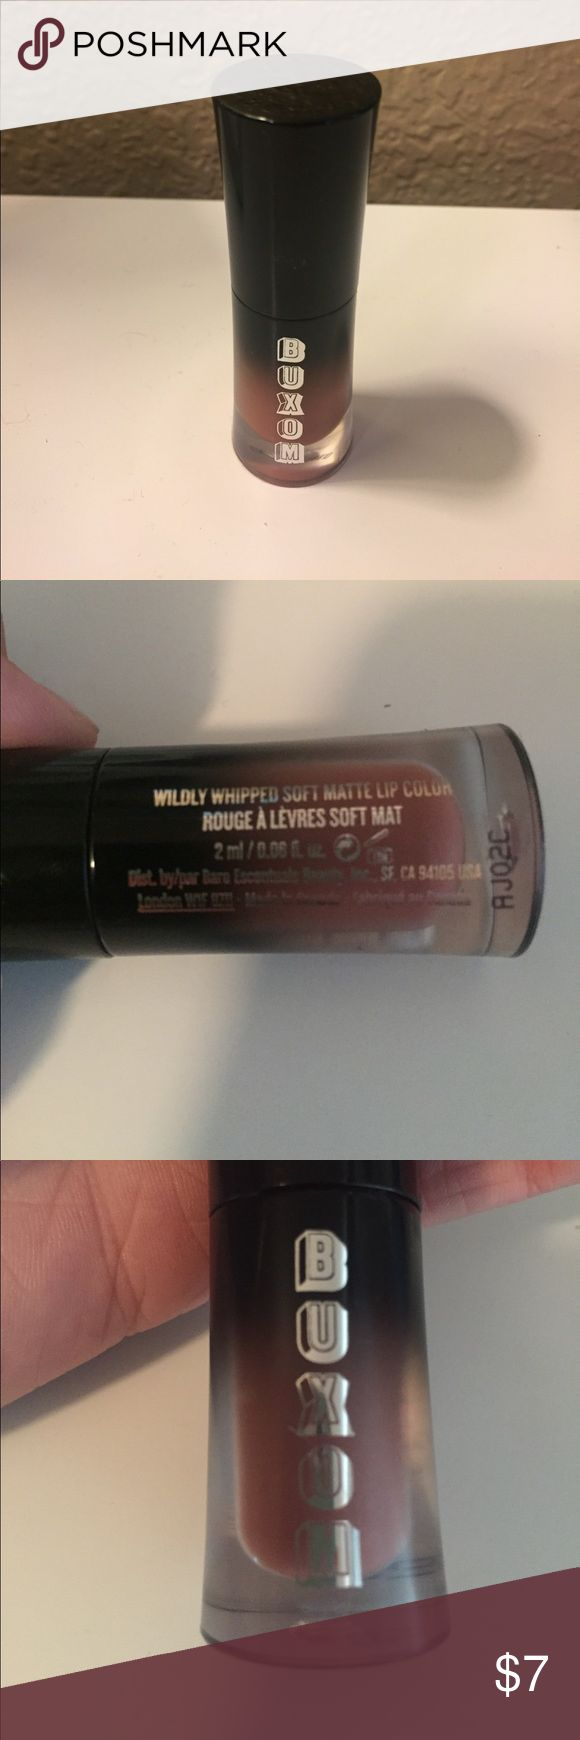 Buxom soft matte lipstick Buxom soft matte lipstick in centerfold  (nude pink) buxom Makeup Lipstick